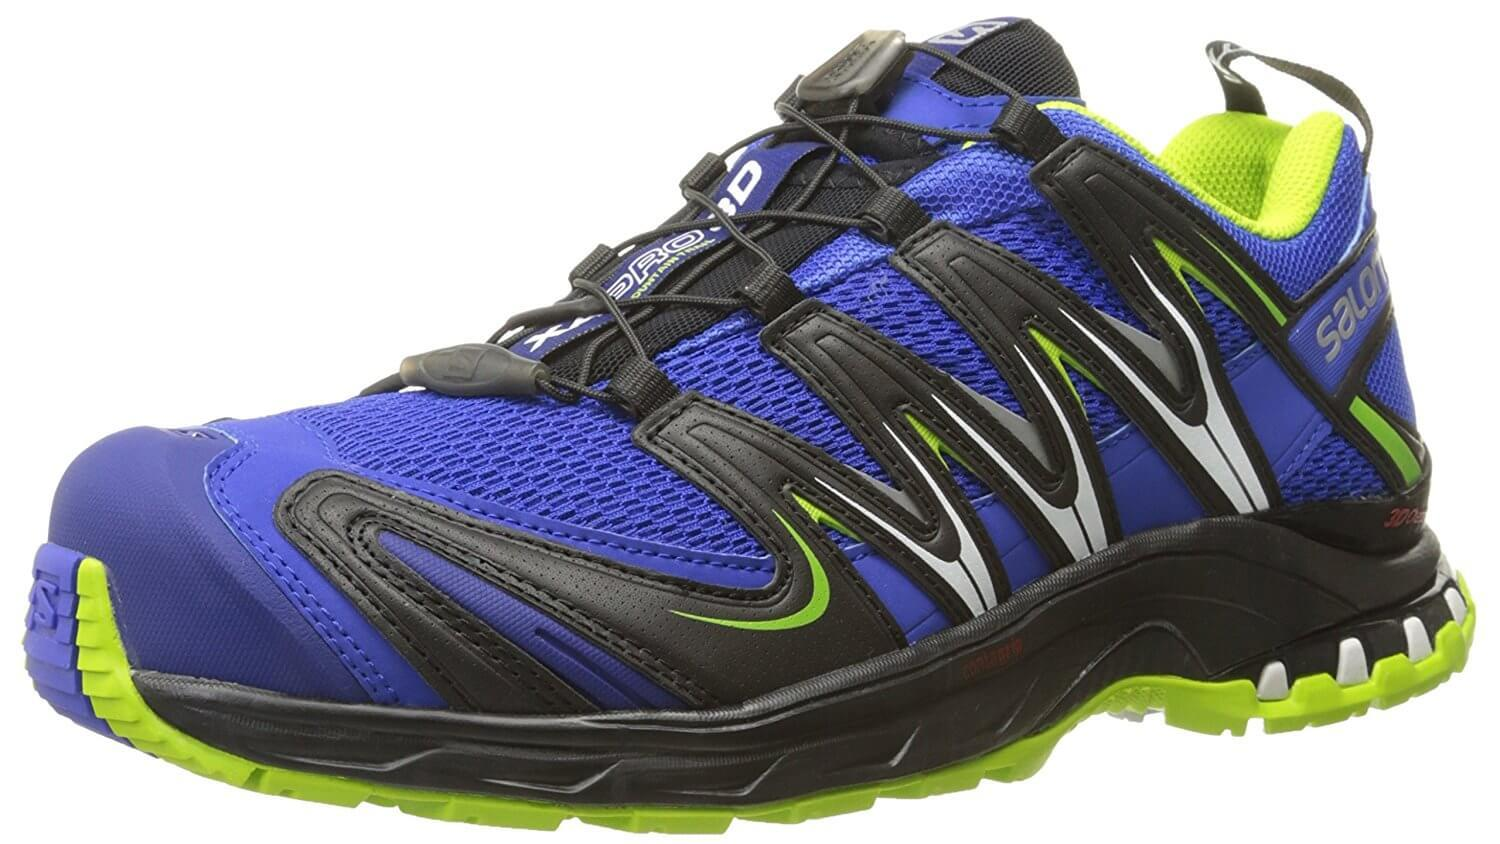 Mens Salomon XA Pro 3D Running Shoes Light Green Buying New